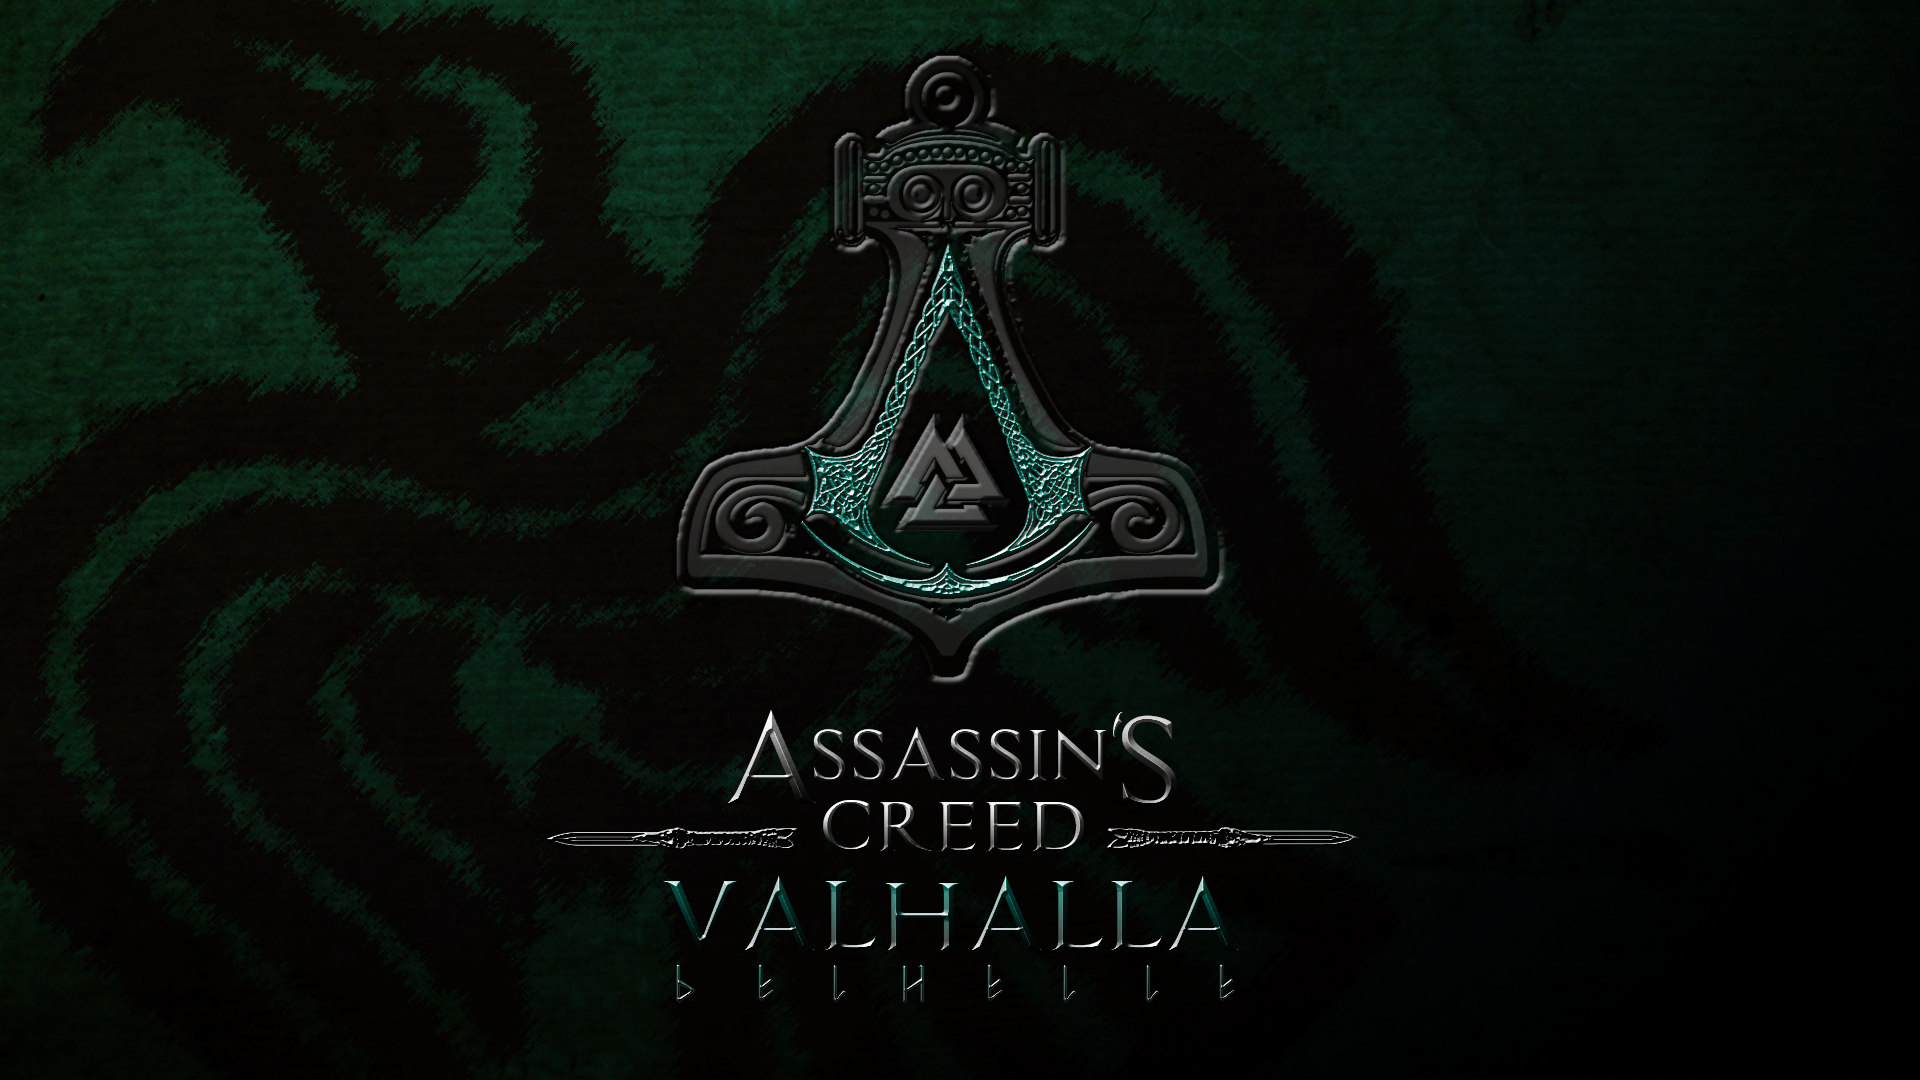 logo assassins creed valhalla symbol